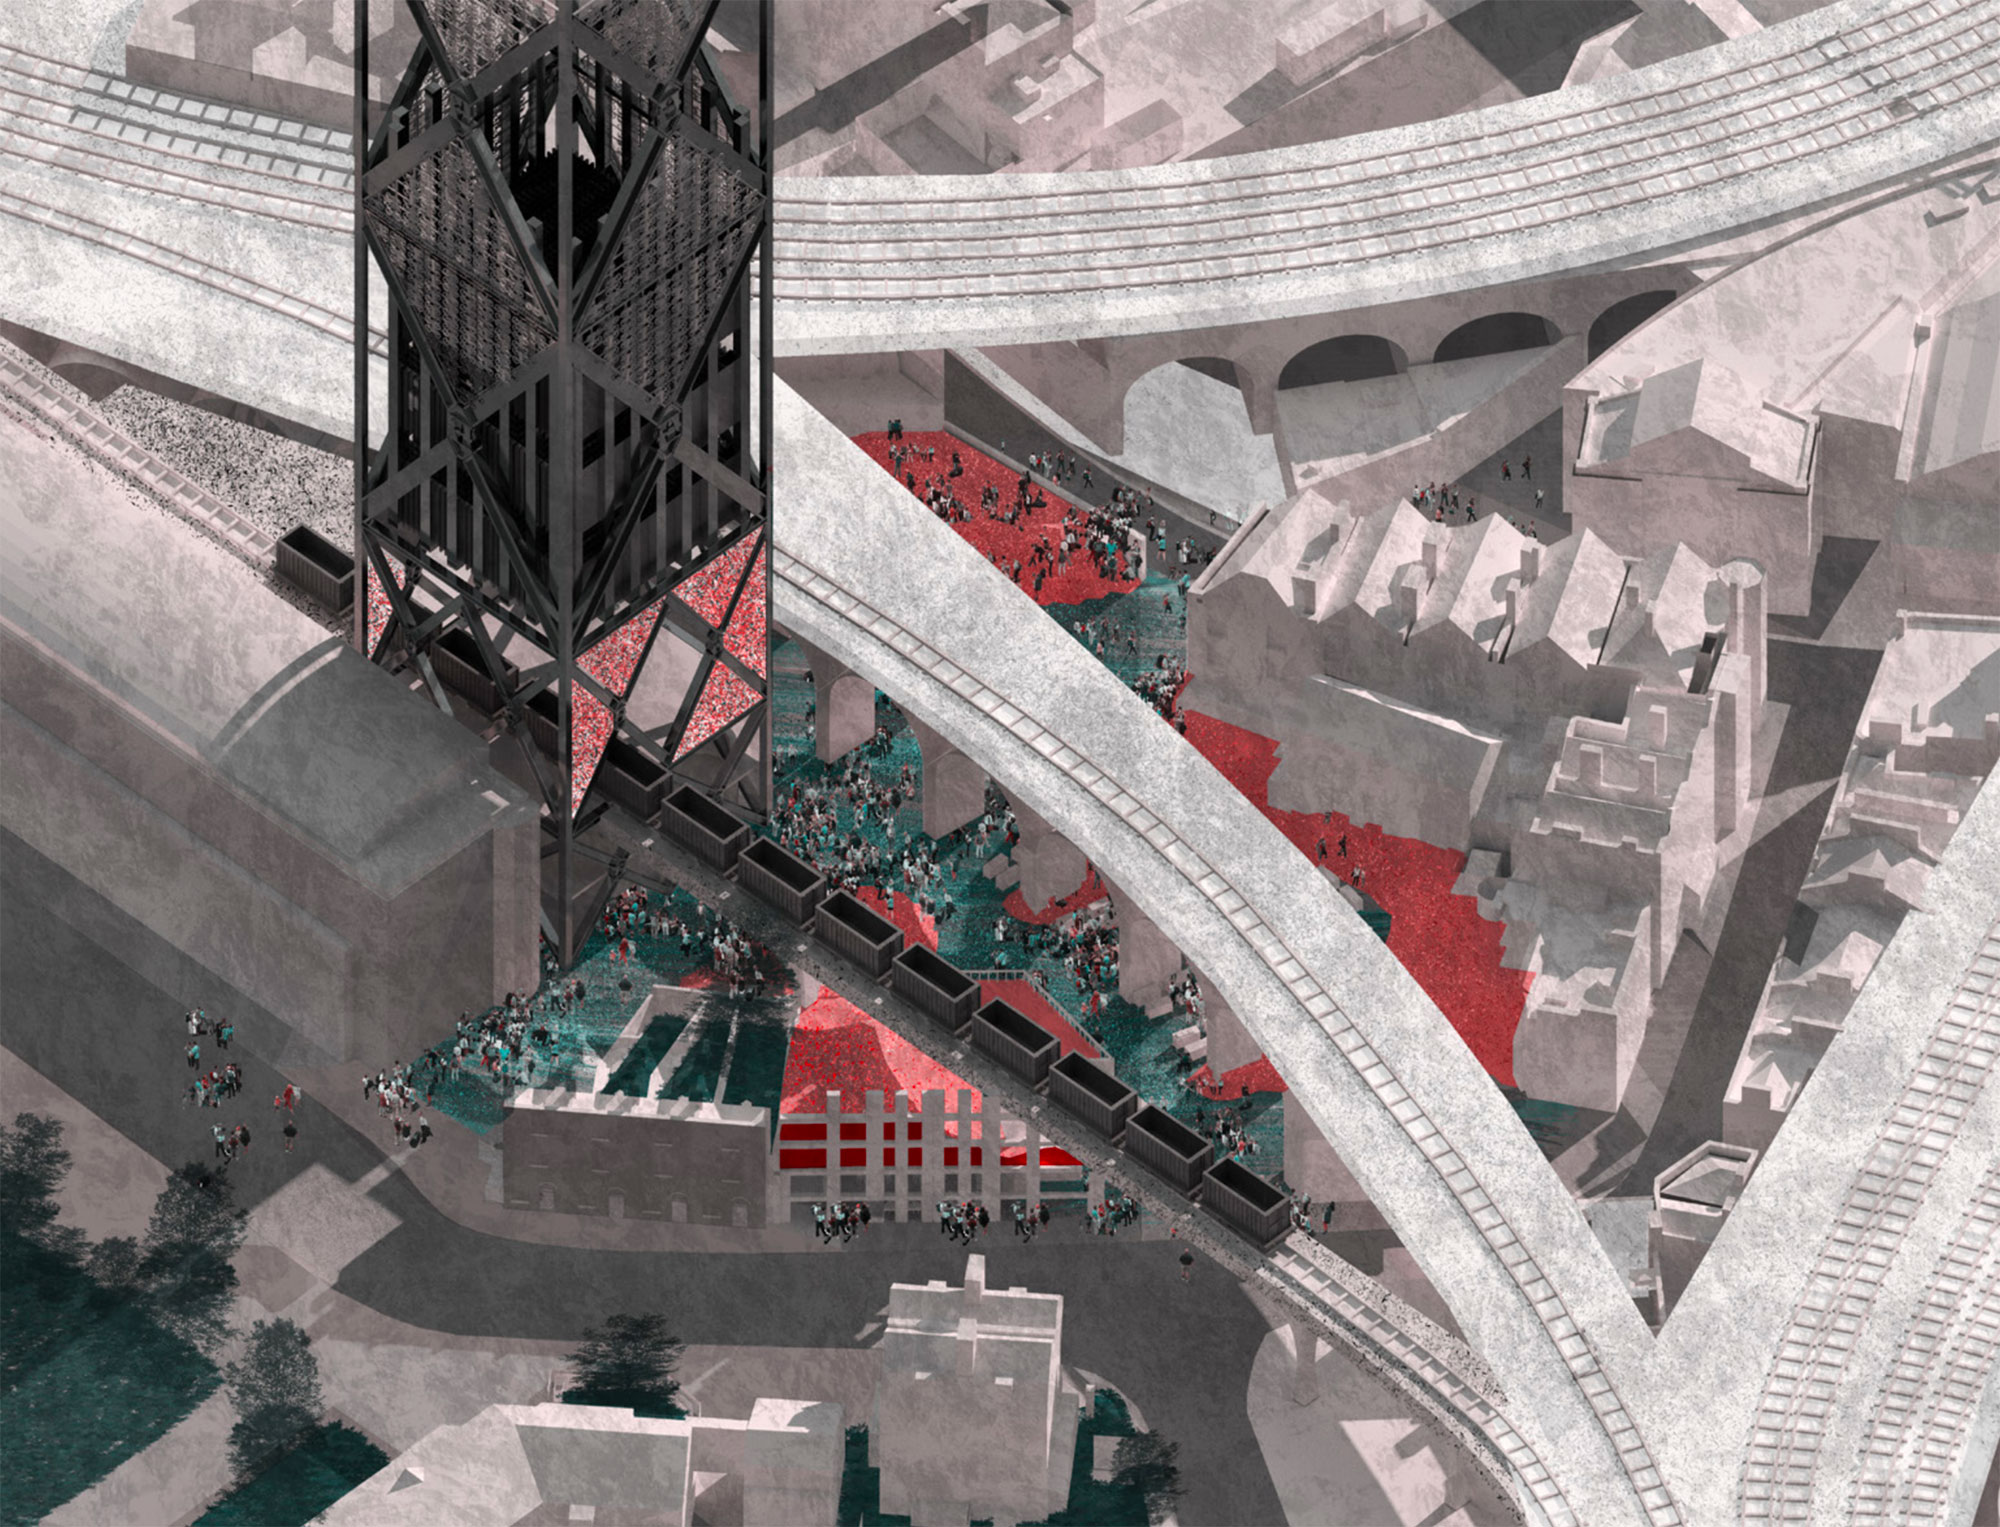 The tower occupies a tight site, creating new public spaces and pedestrian routes